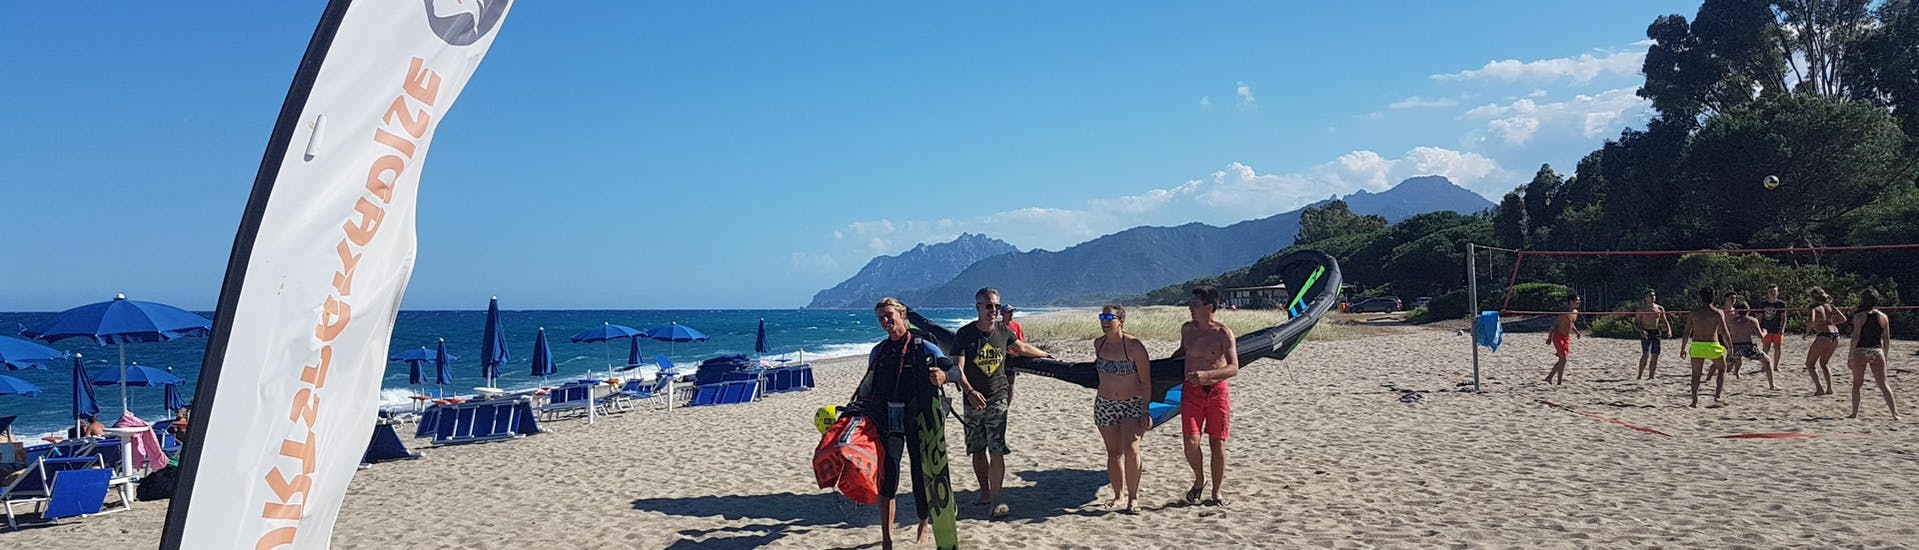 Kitesurfing Lessons for Teens & Adults - Advanced